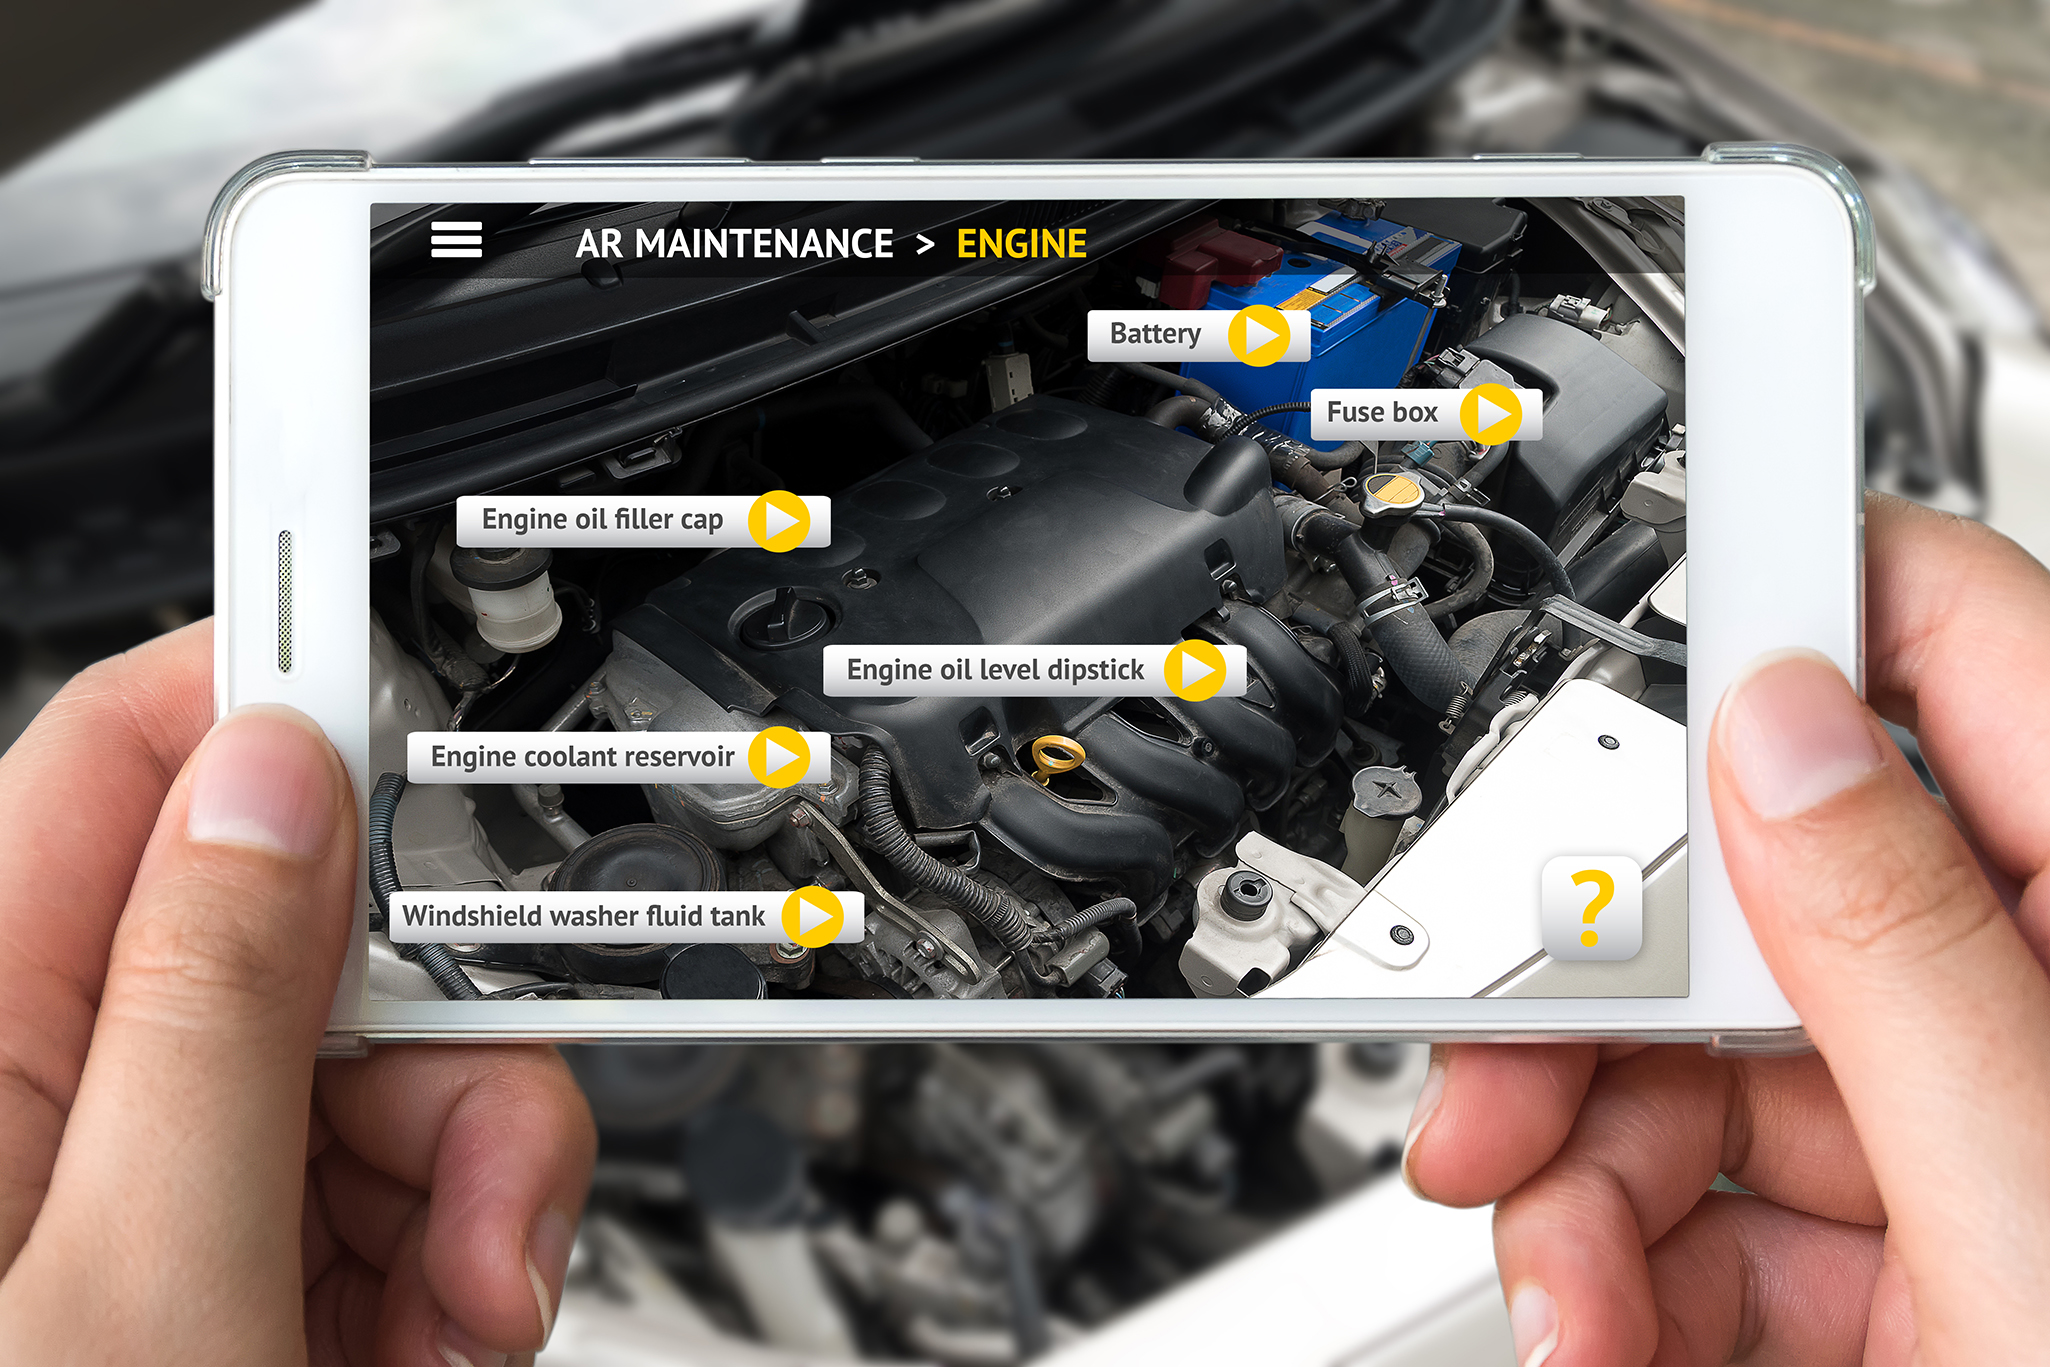 Augmented Reality - Using object detection on device enables maintenance, training and consumer applications in real time and remote.